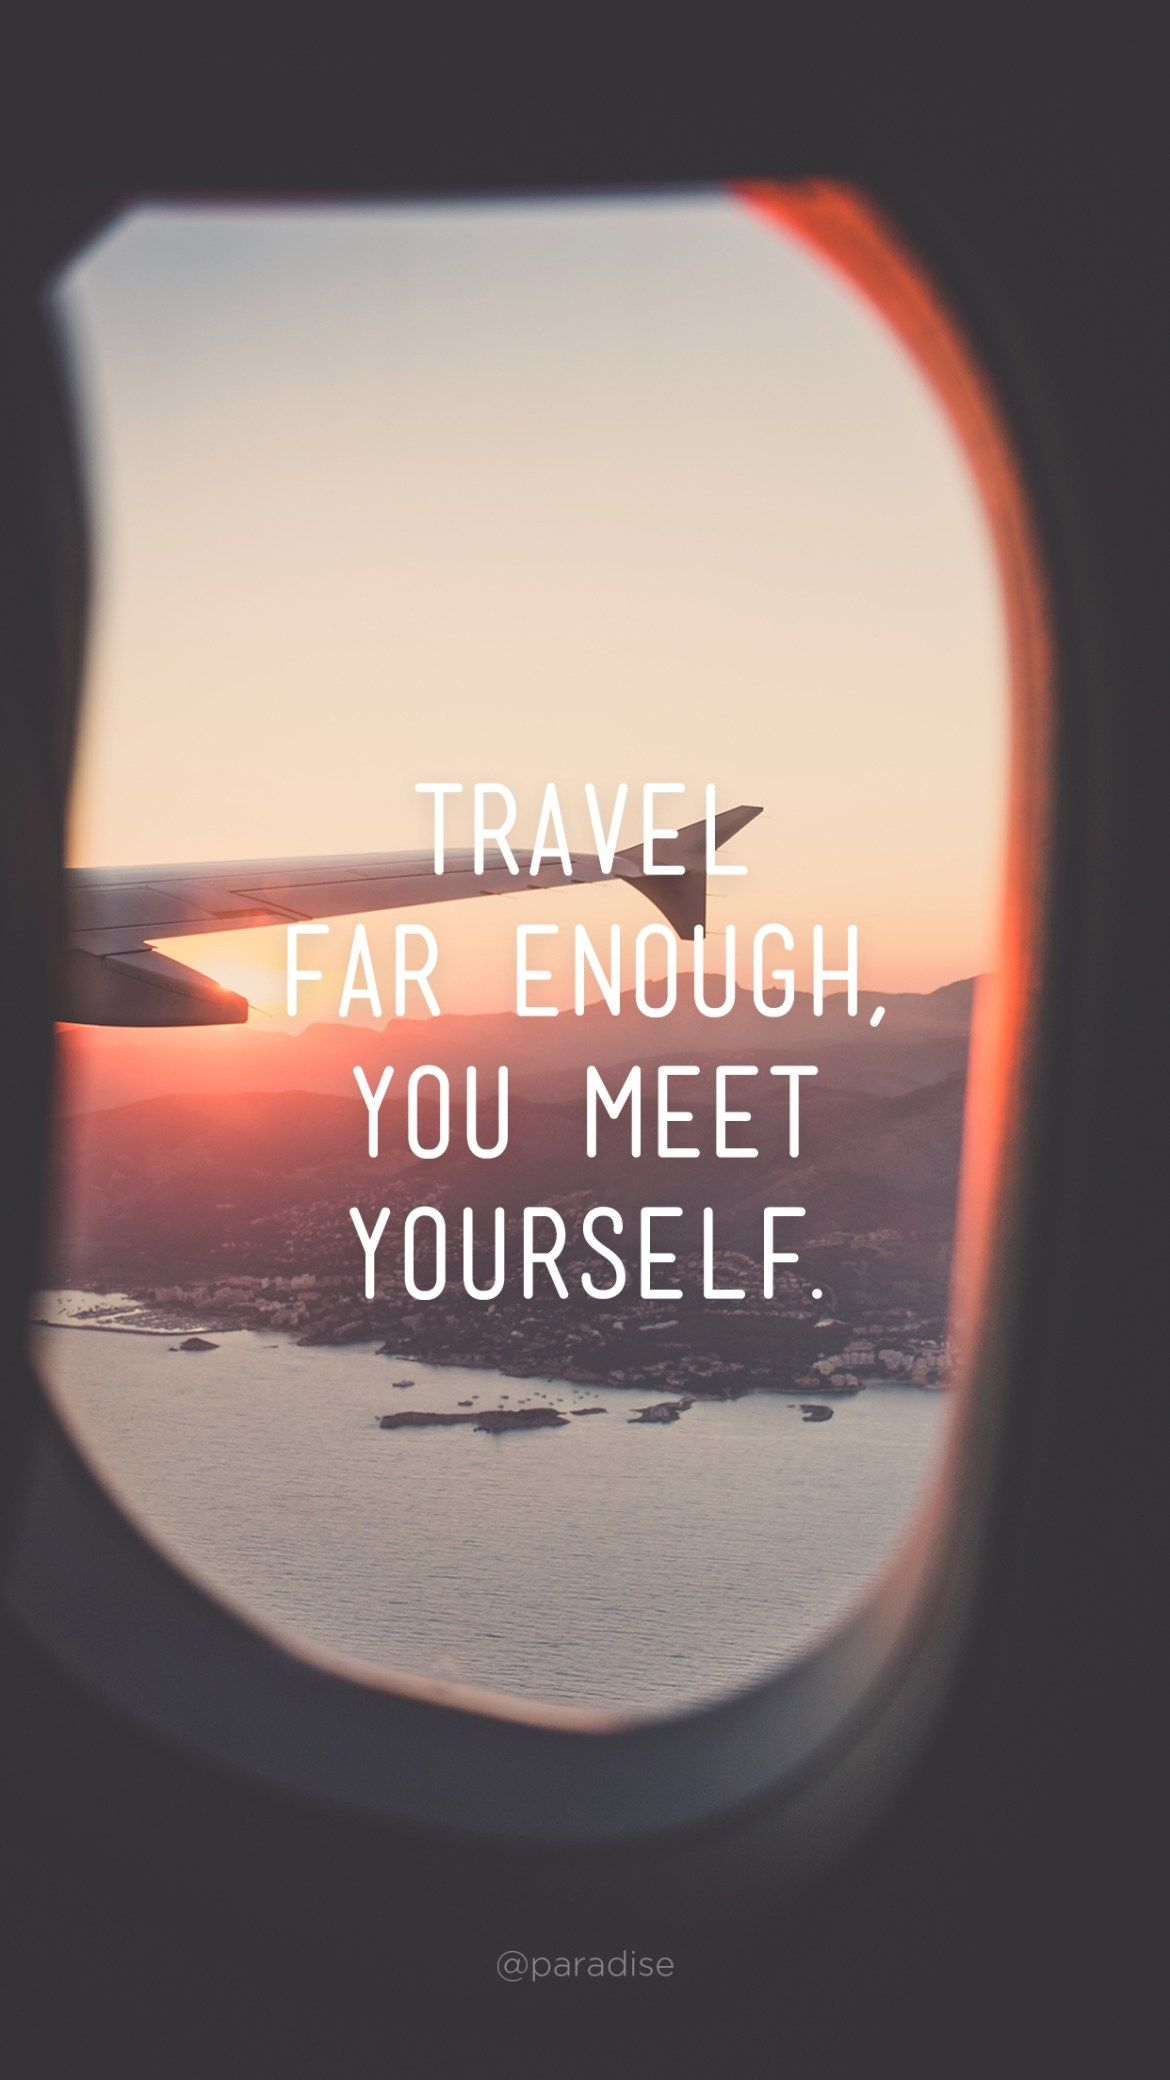 15 Beautiful IPhone Wallpapers With Travel Quotes